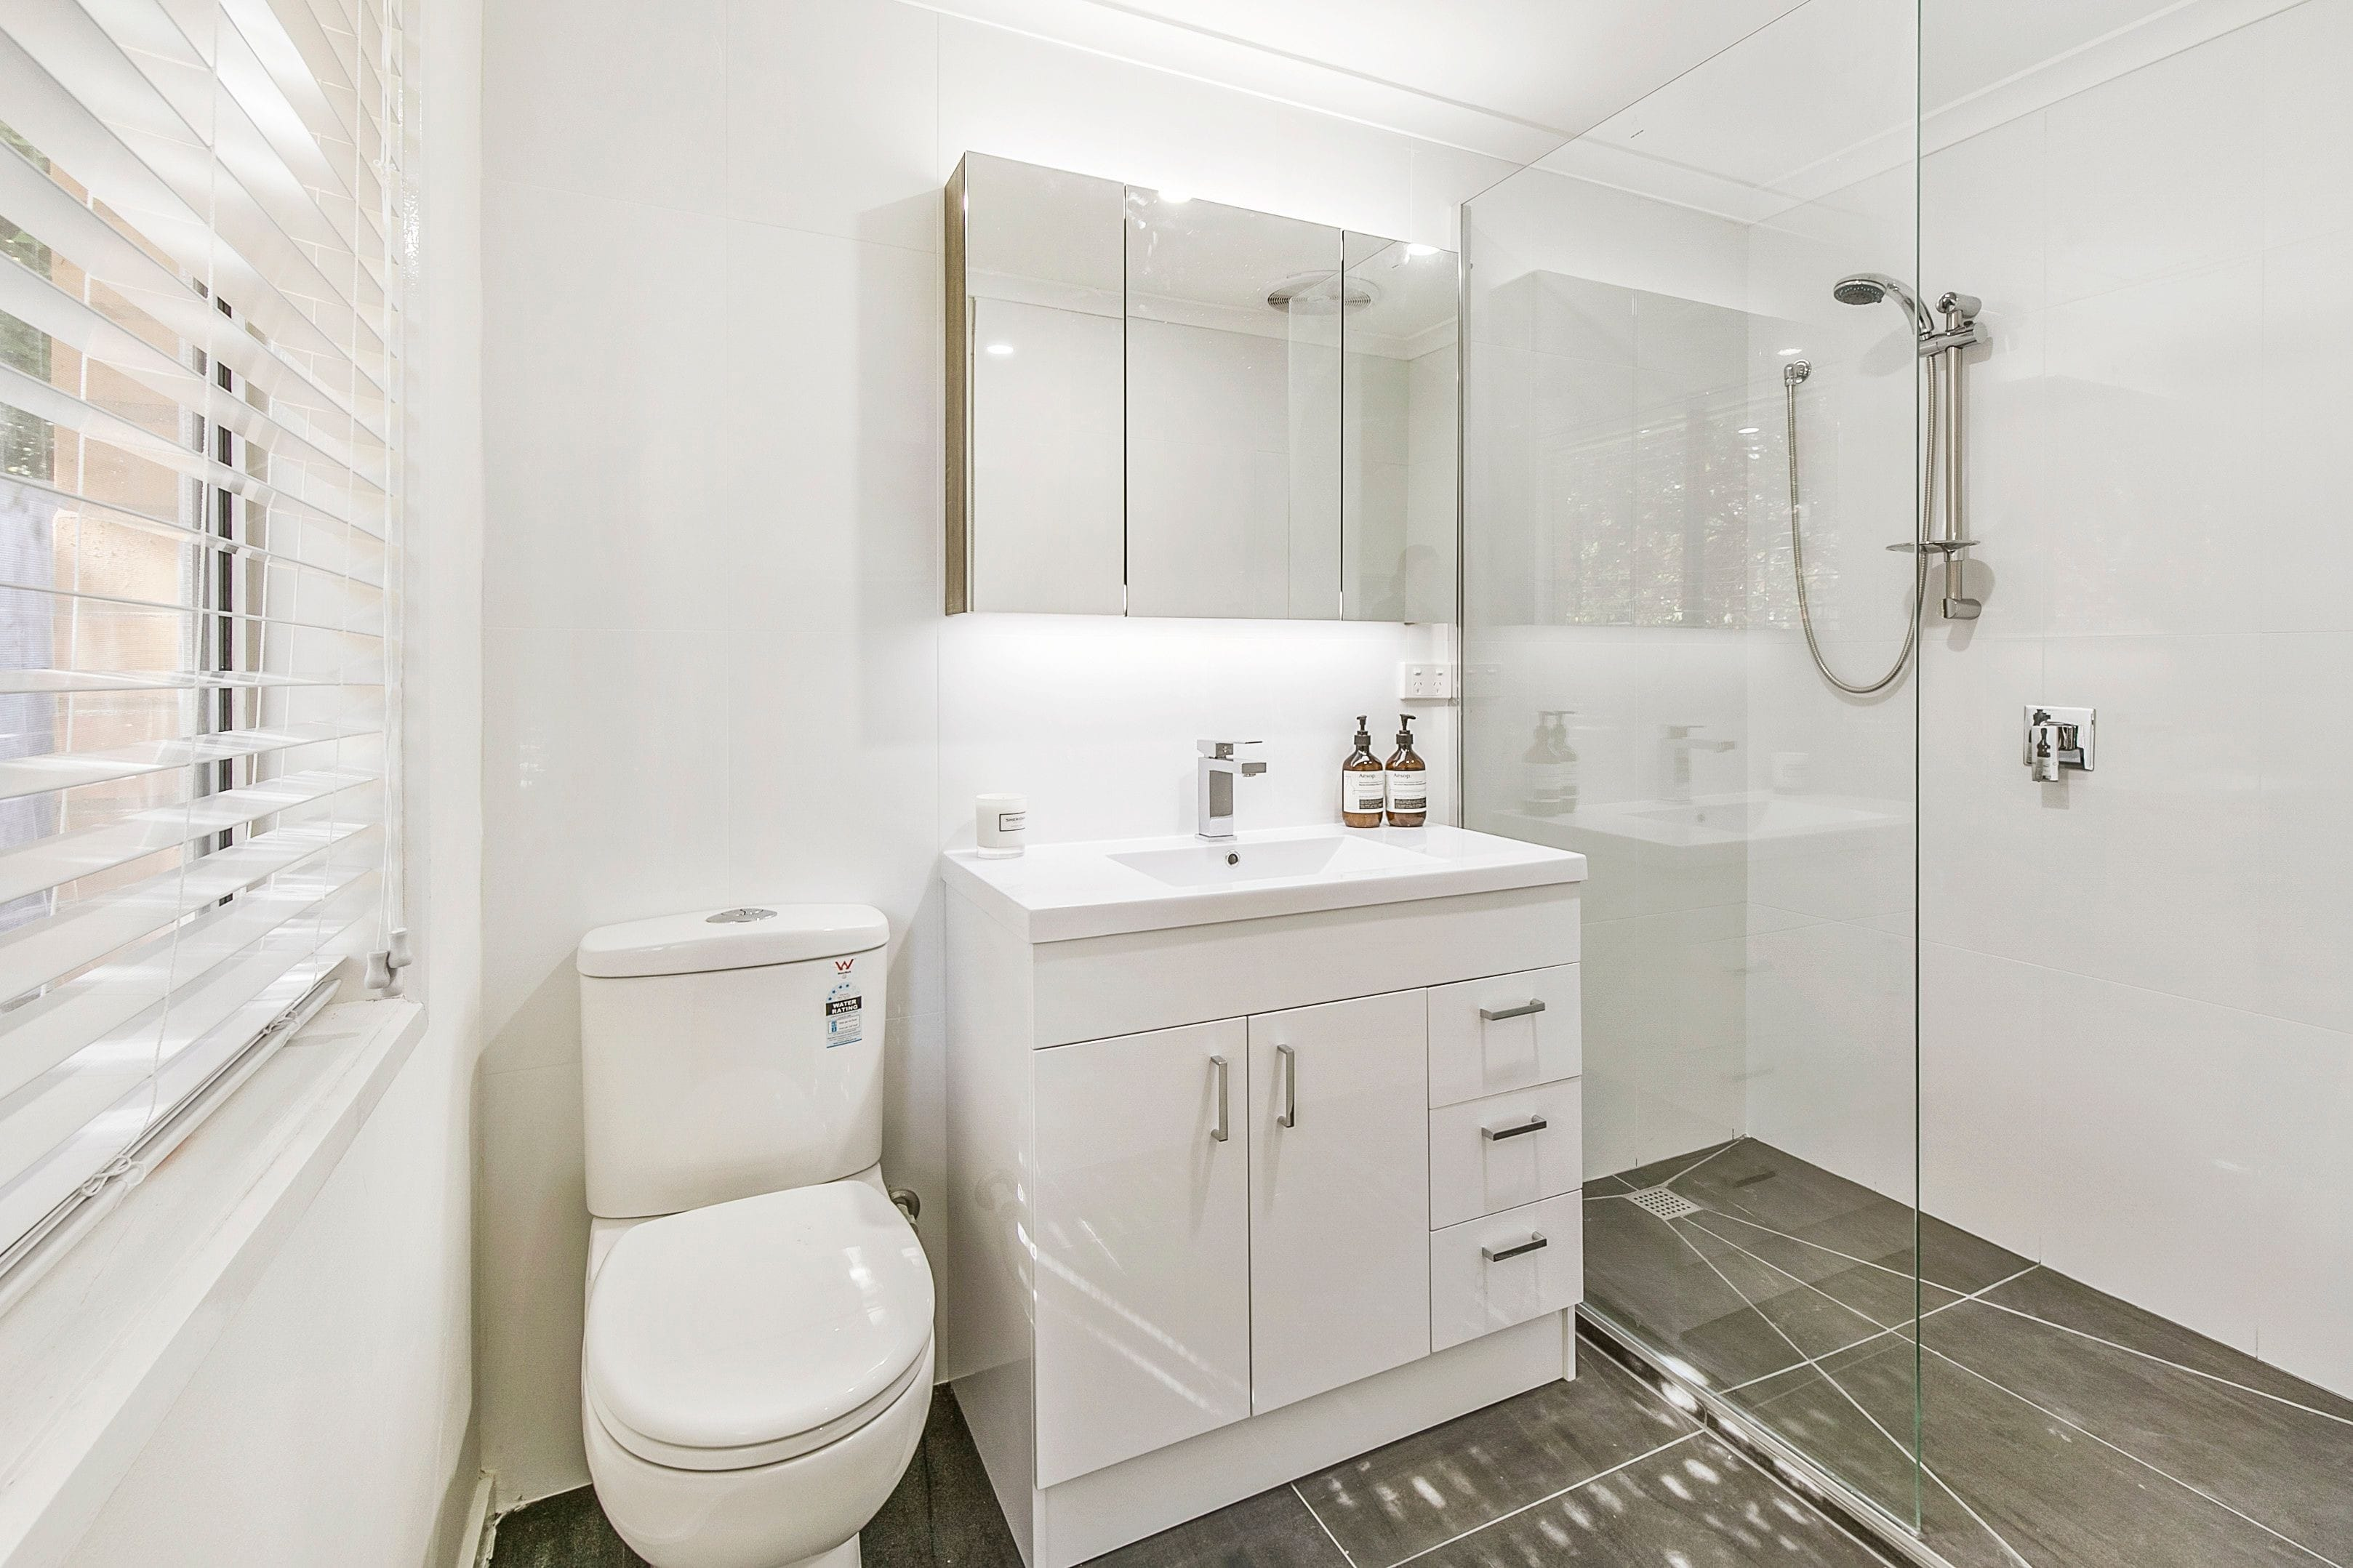 Small Renovations Melbourne Small Bathroom Renovations Melbourne Cheap Bathroom Renovations